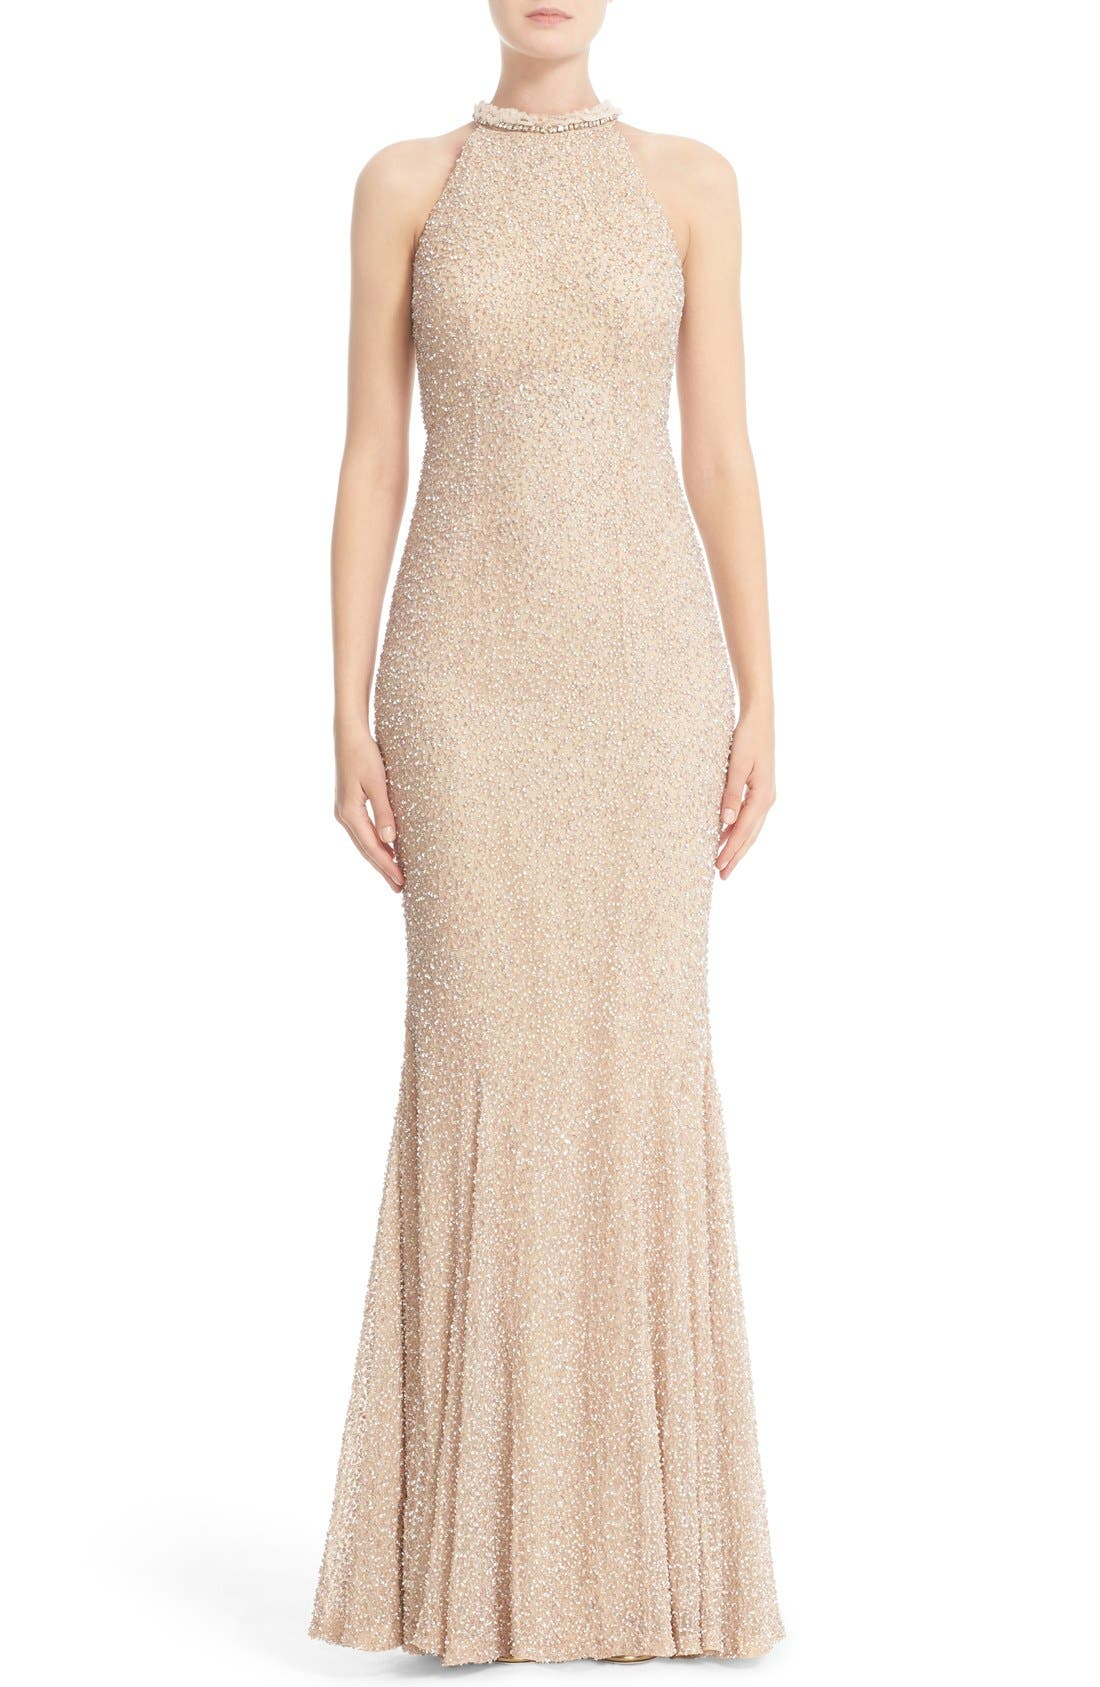 Hand Embellished Halter Mermaid Gown,                         Main,                         color, Champagne